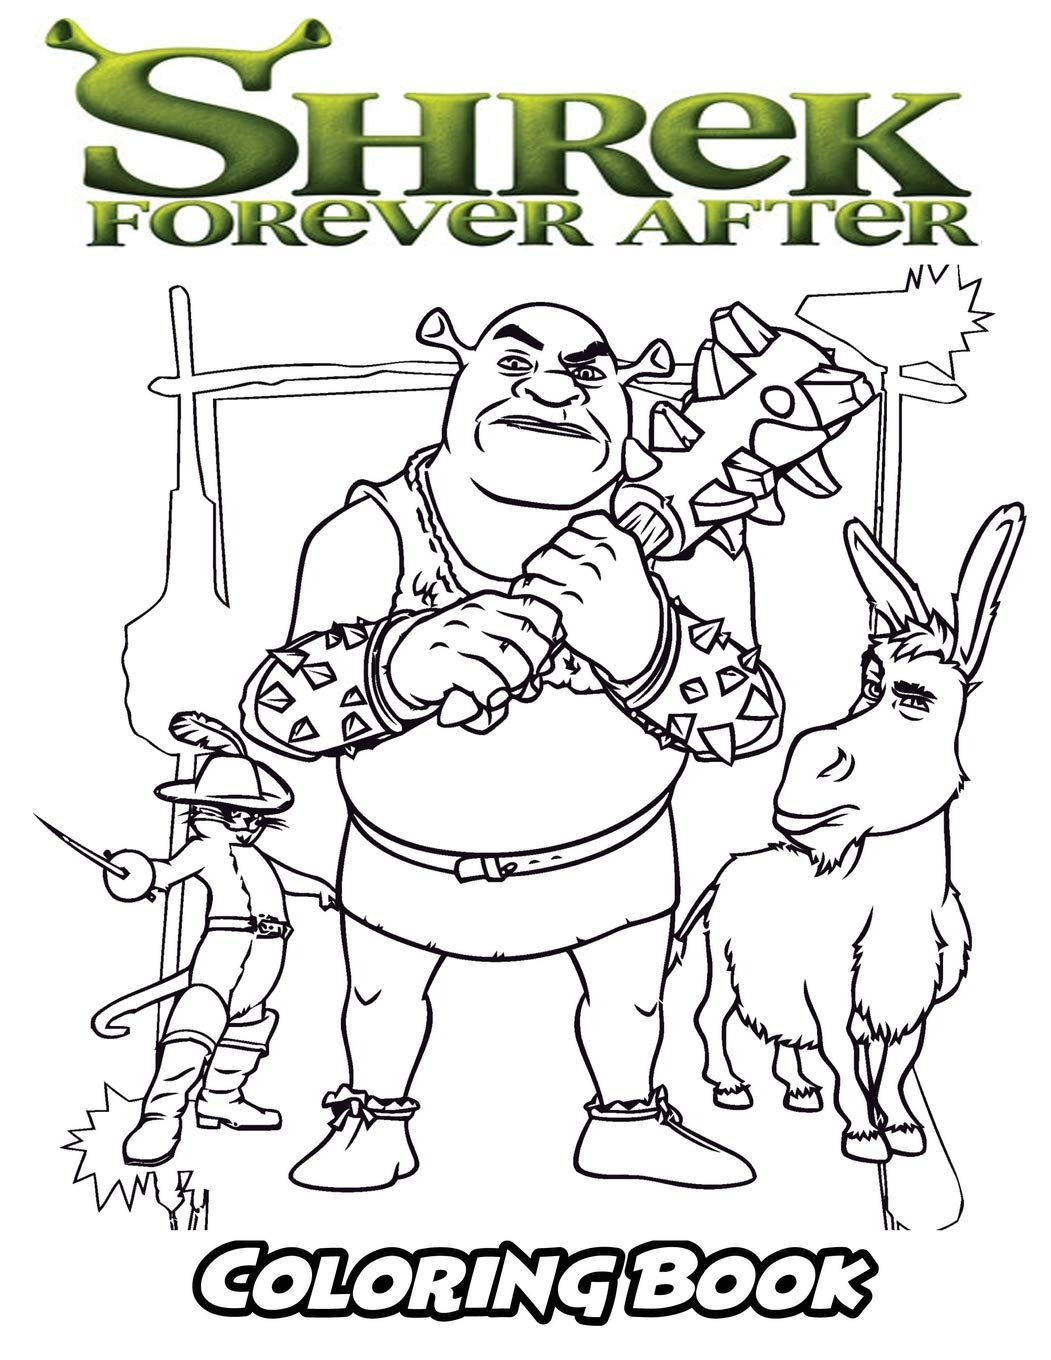 Shrek forever after coloring book coloring book for kids and adults activity book with fun easy and relaxing coloring pages perfect for children ages